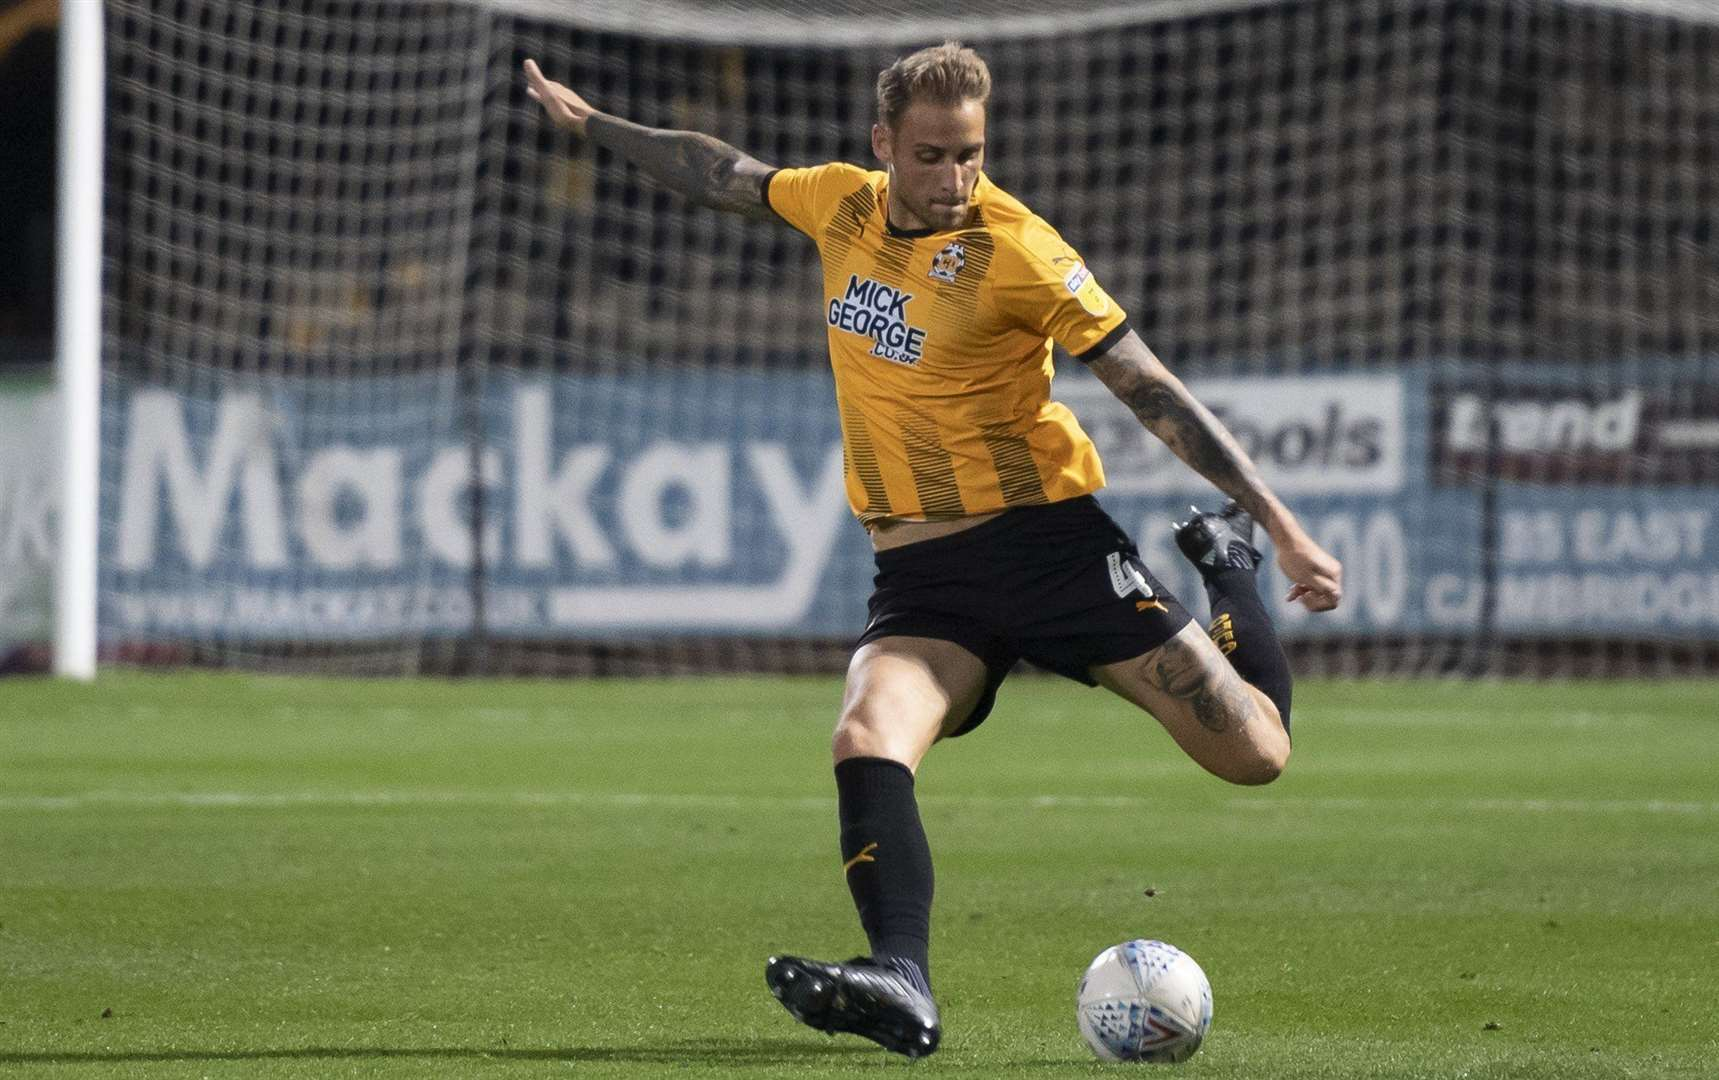 George Taft had a header cleared off the line for Cambridge United against Swindon Town.